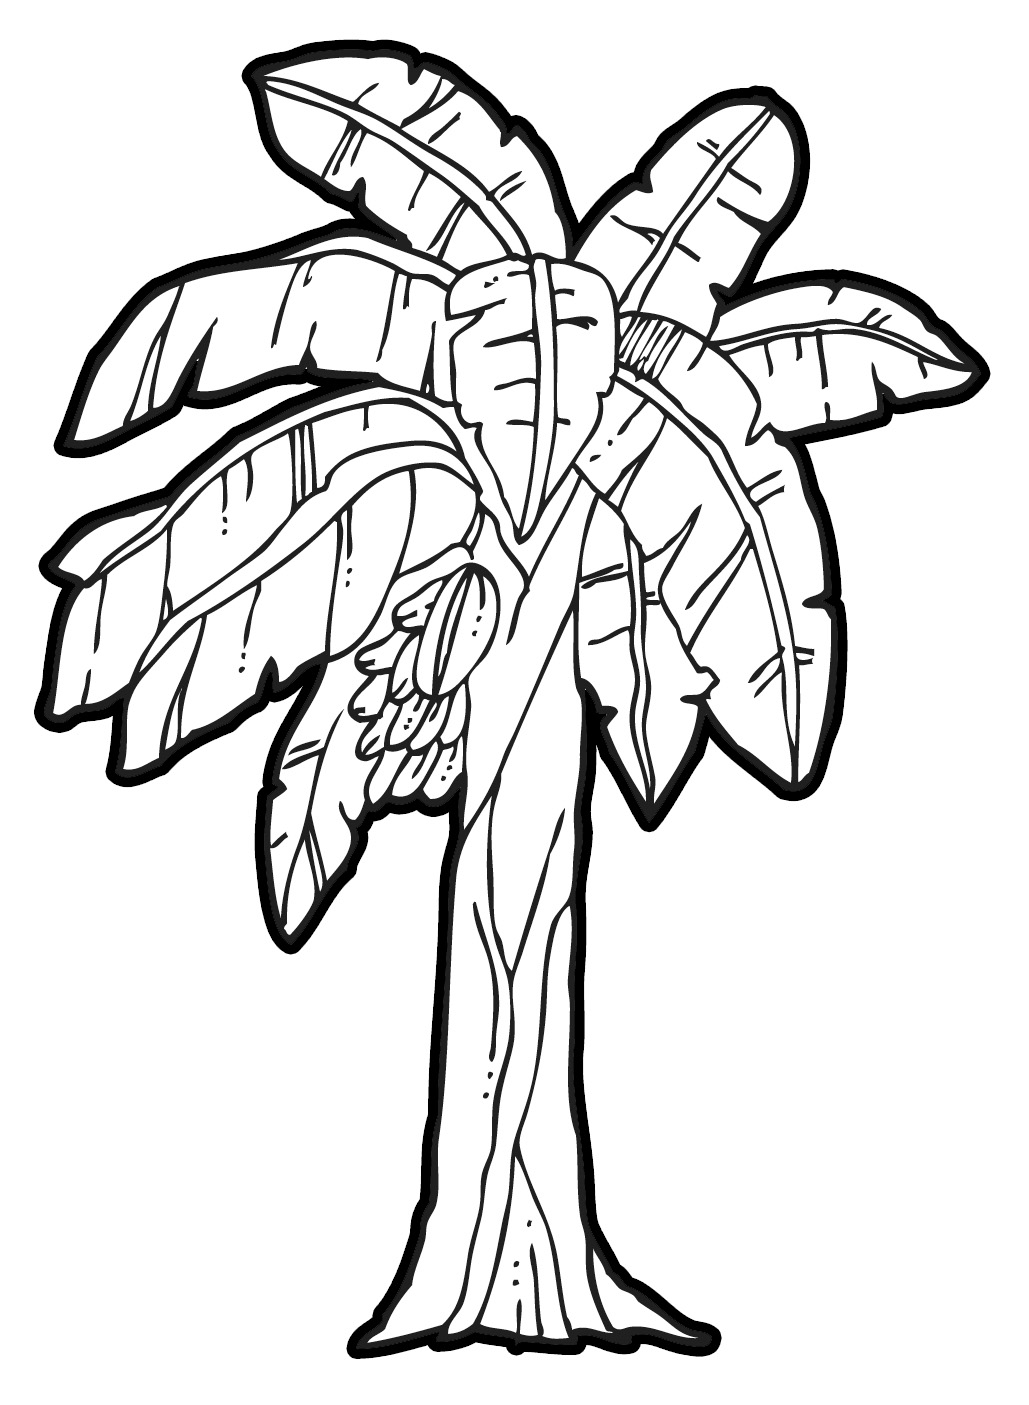 Banana tree leaf outline clipart.